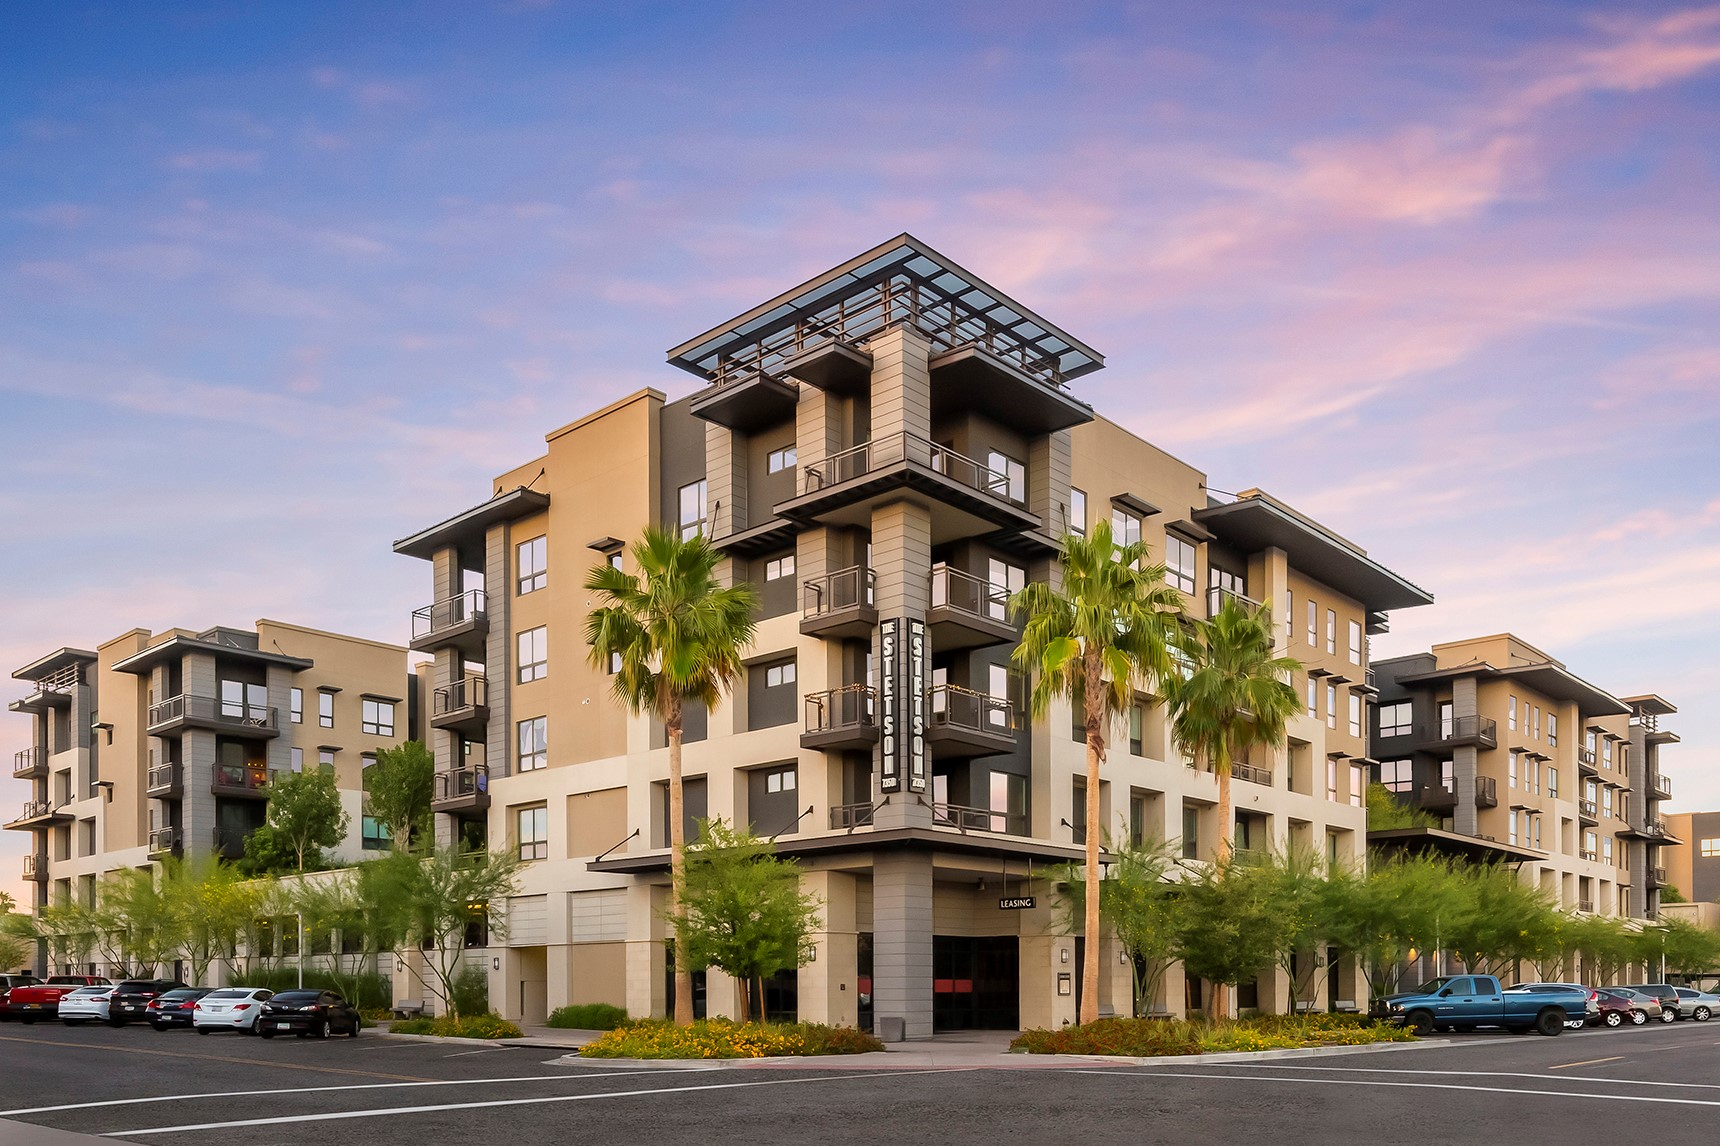 3 Bedroom Apartments Salt Lake City The Stetson Cottonwood Residential